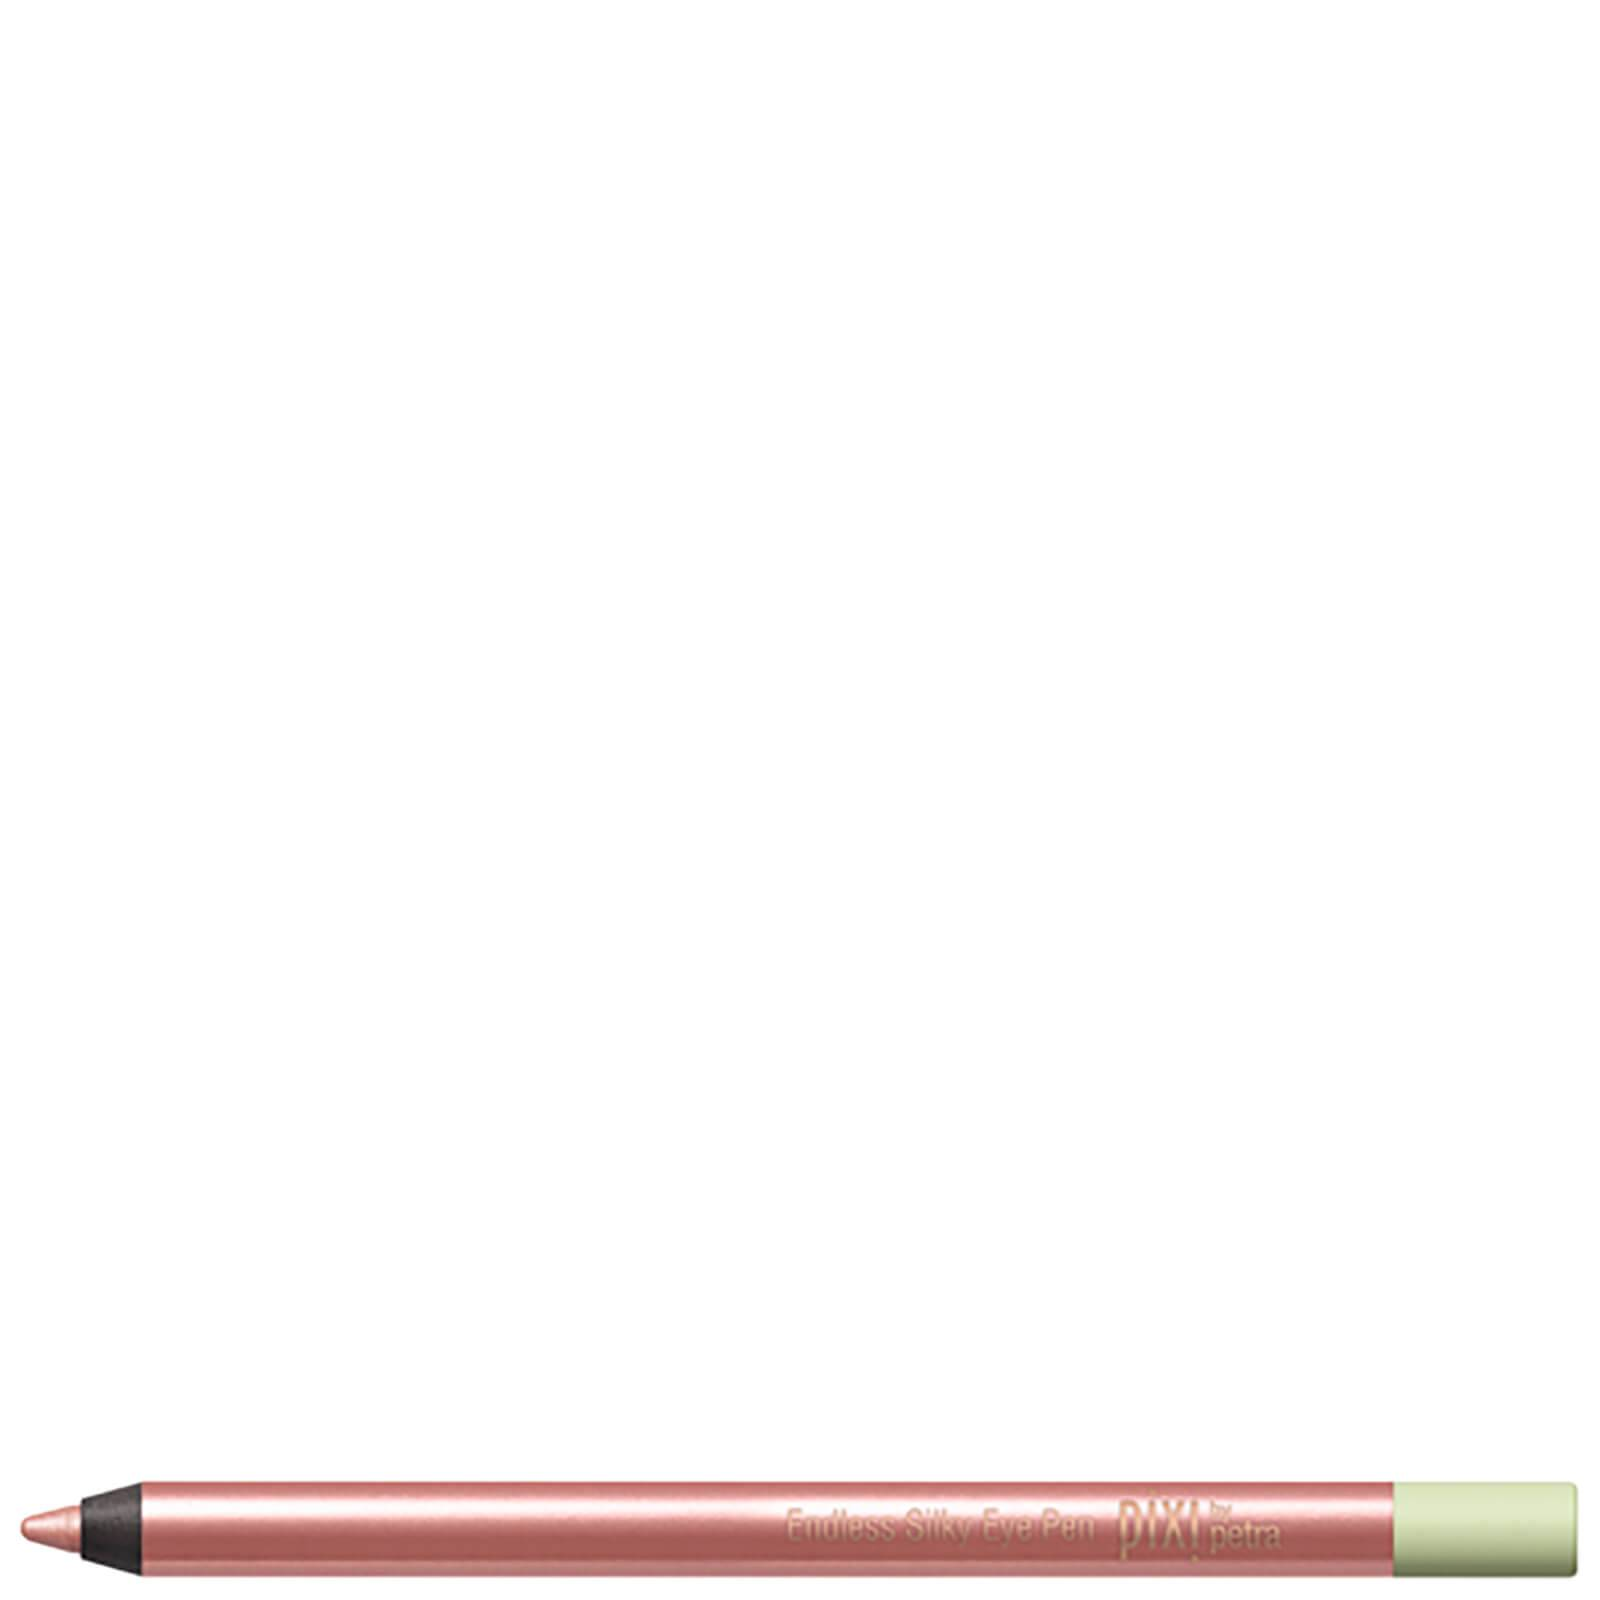 PIXI Endless Silky Eye Pen - Opal Overcoat